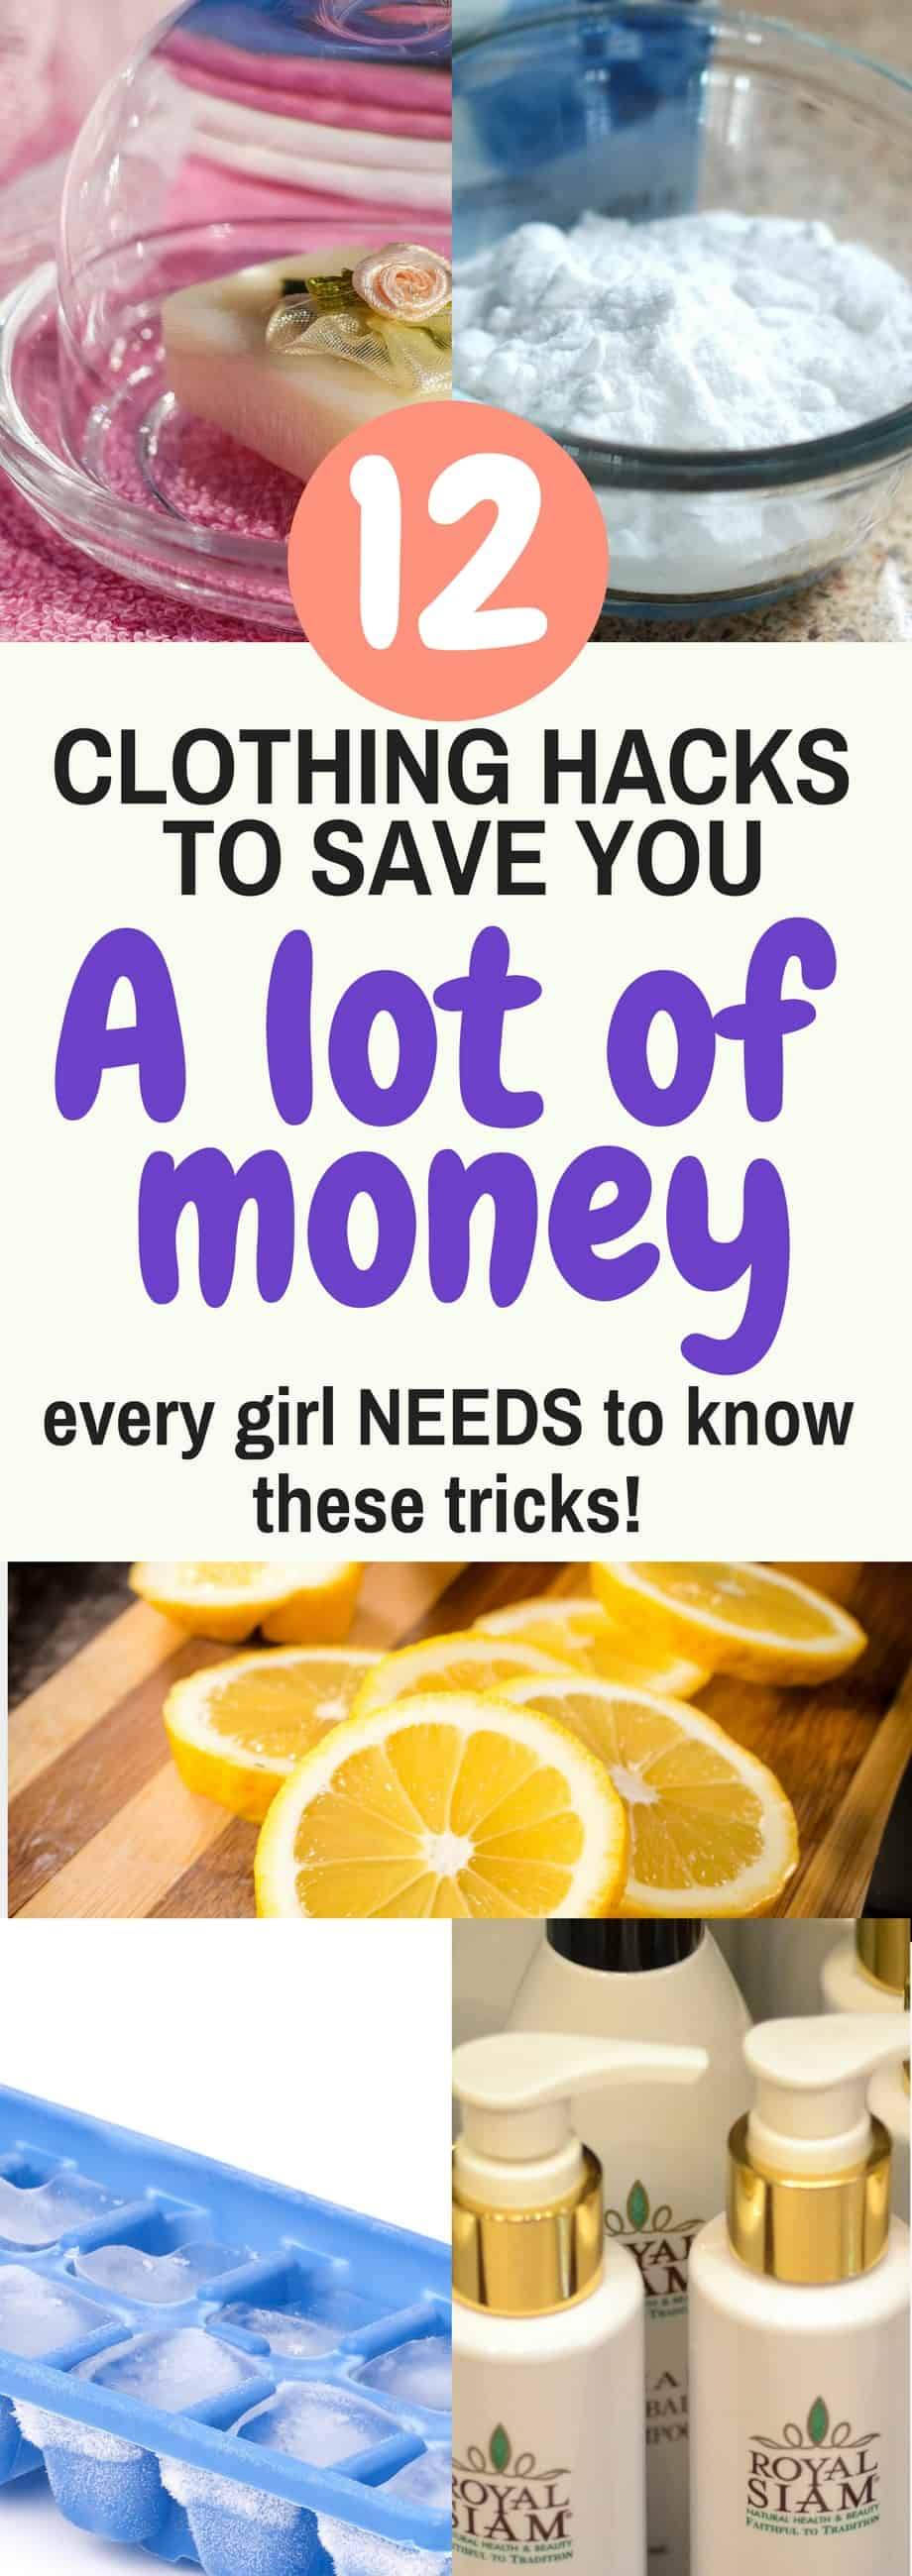 I'm so happy I found those awesome clothing hacks that help me save money. Those are truly some awesome clothing hacks every girl should know! Definitely pinning!